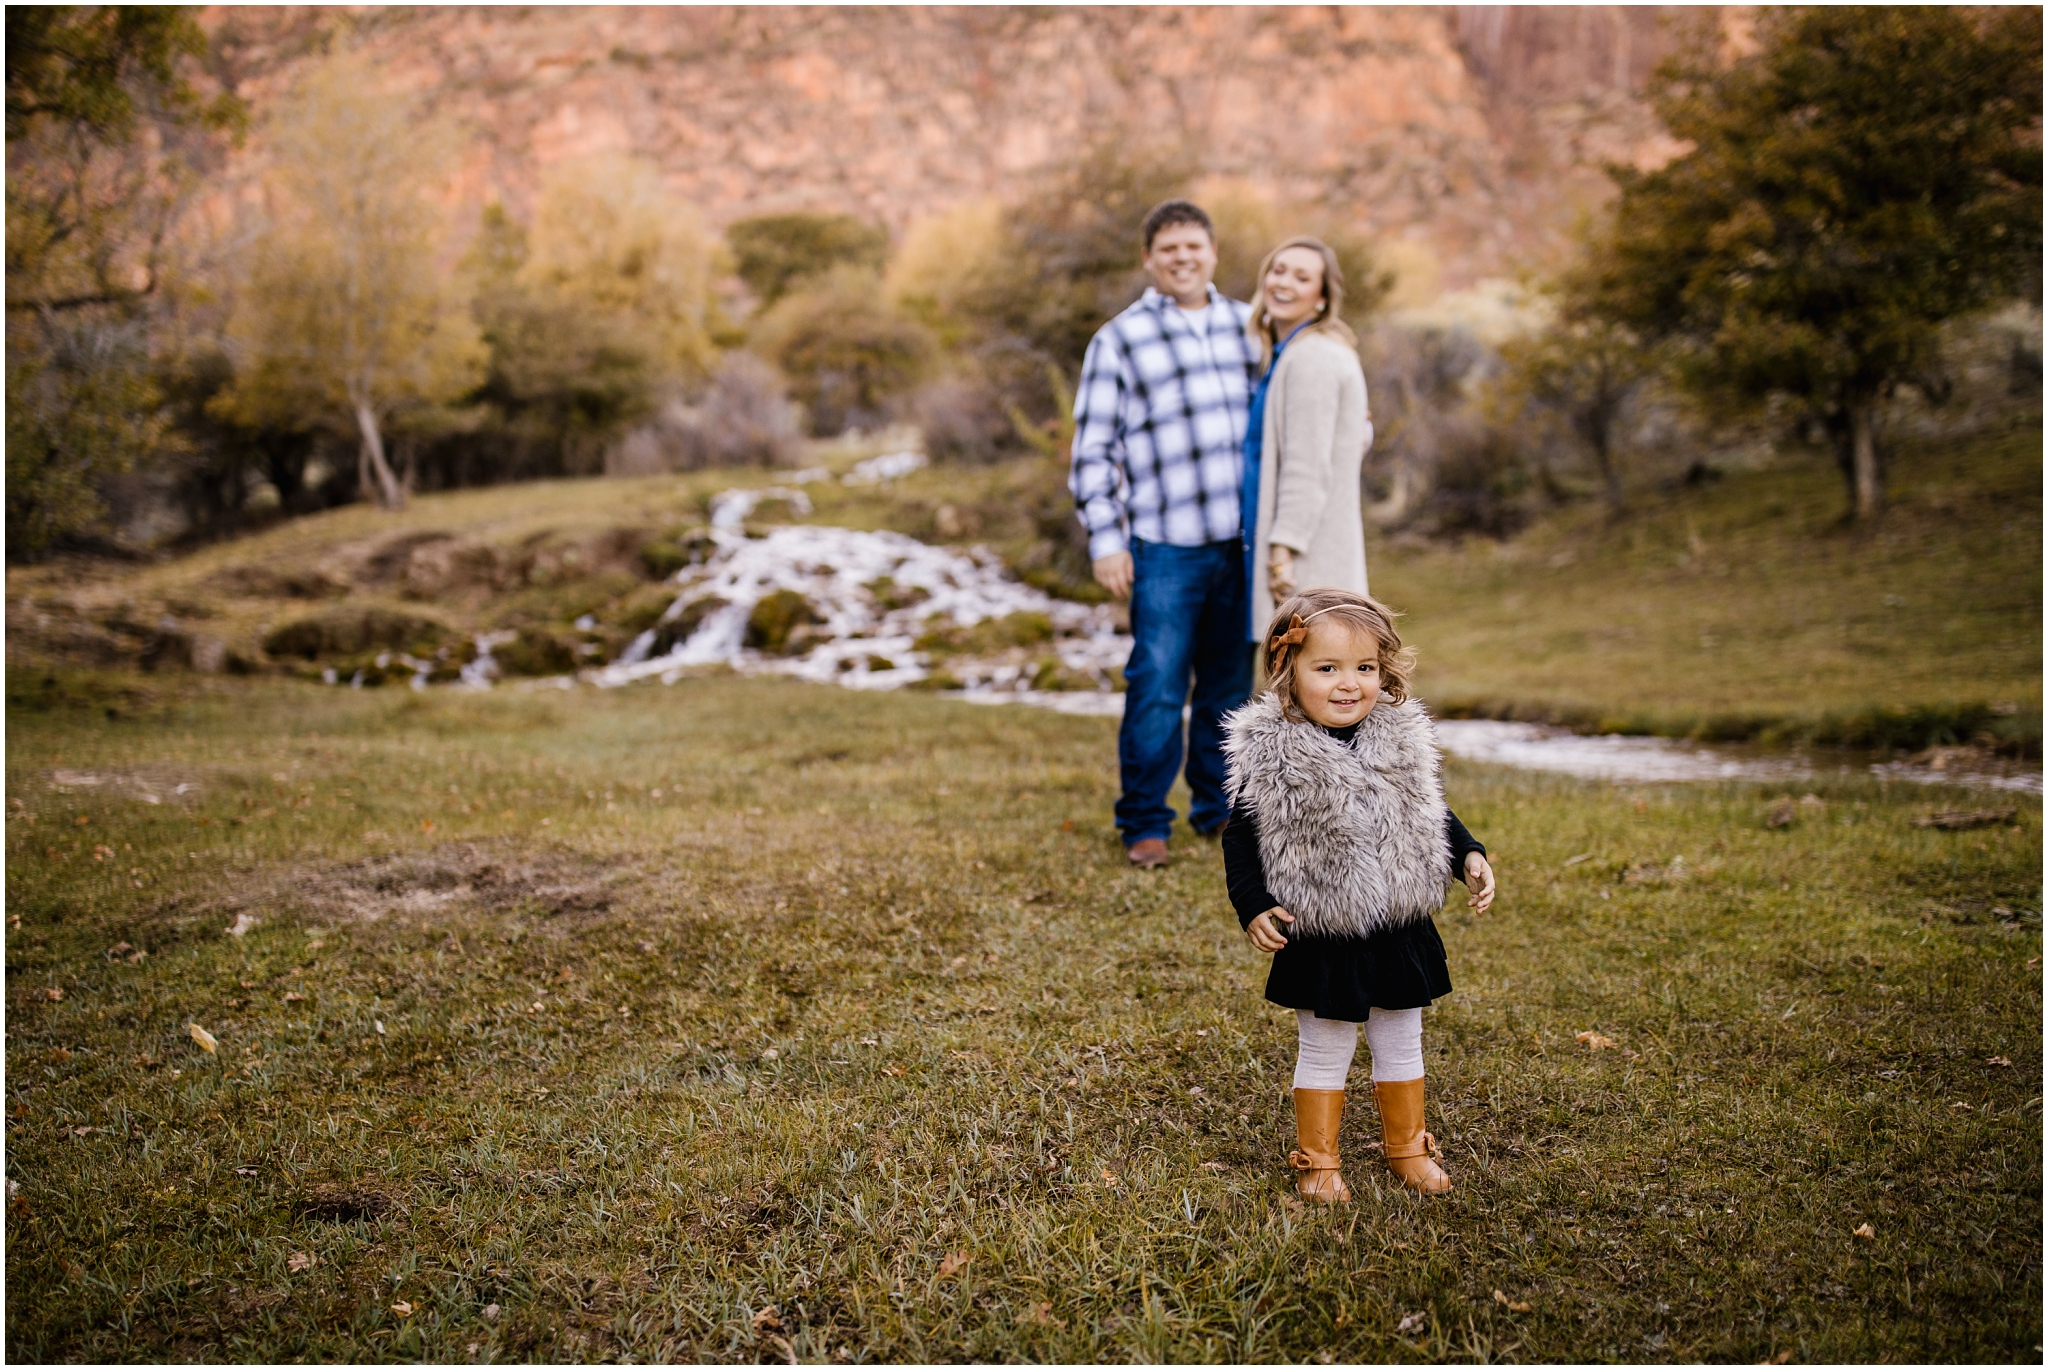 Frandsen-34_Lizzie-B-Imagery-Utah-Family-Photographer-Utah-County-Central-Utah-Park-City-Salt-Lake-City.jpg